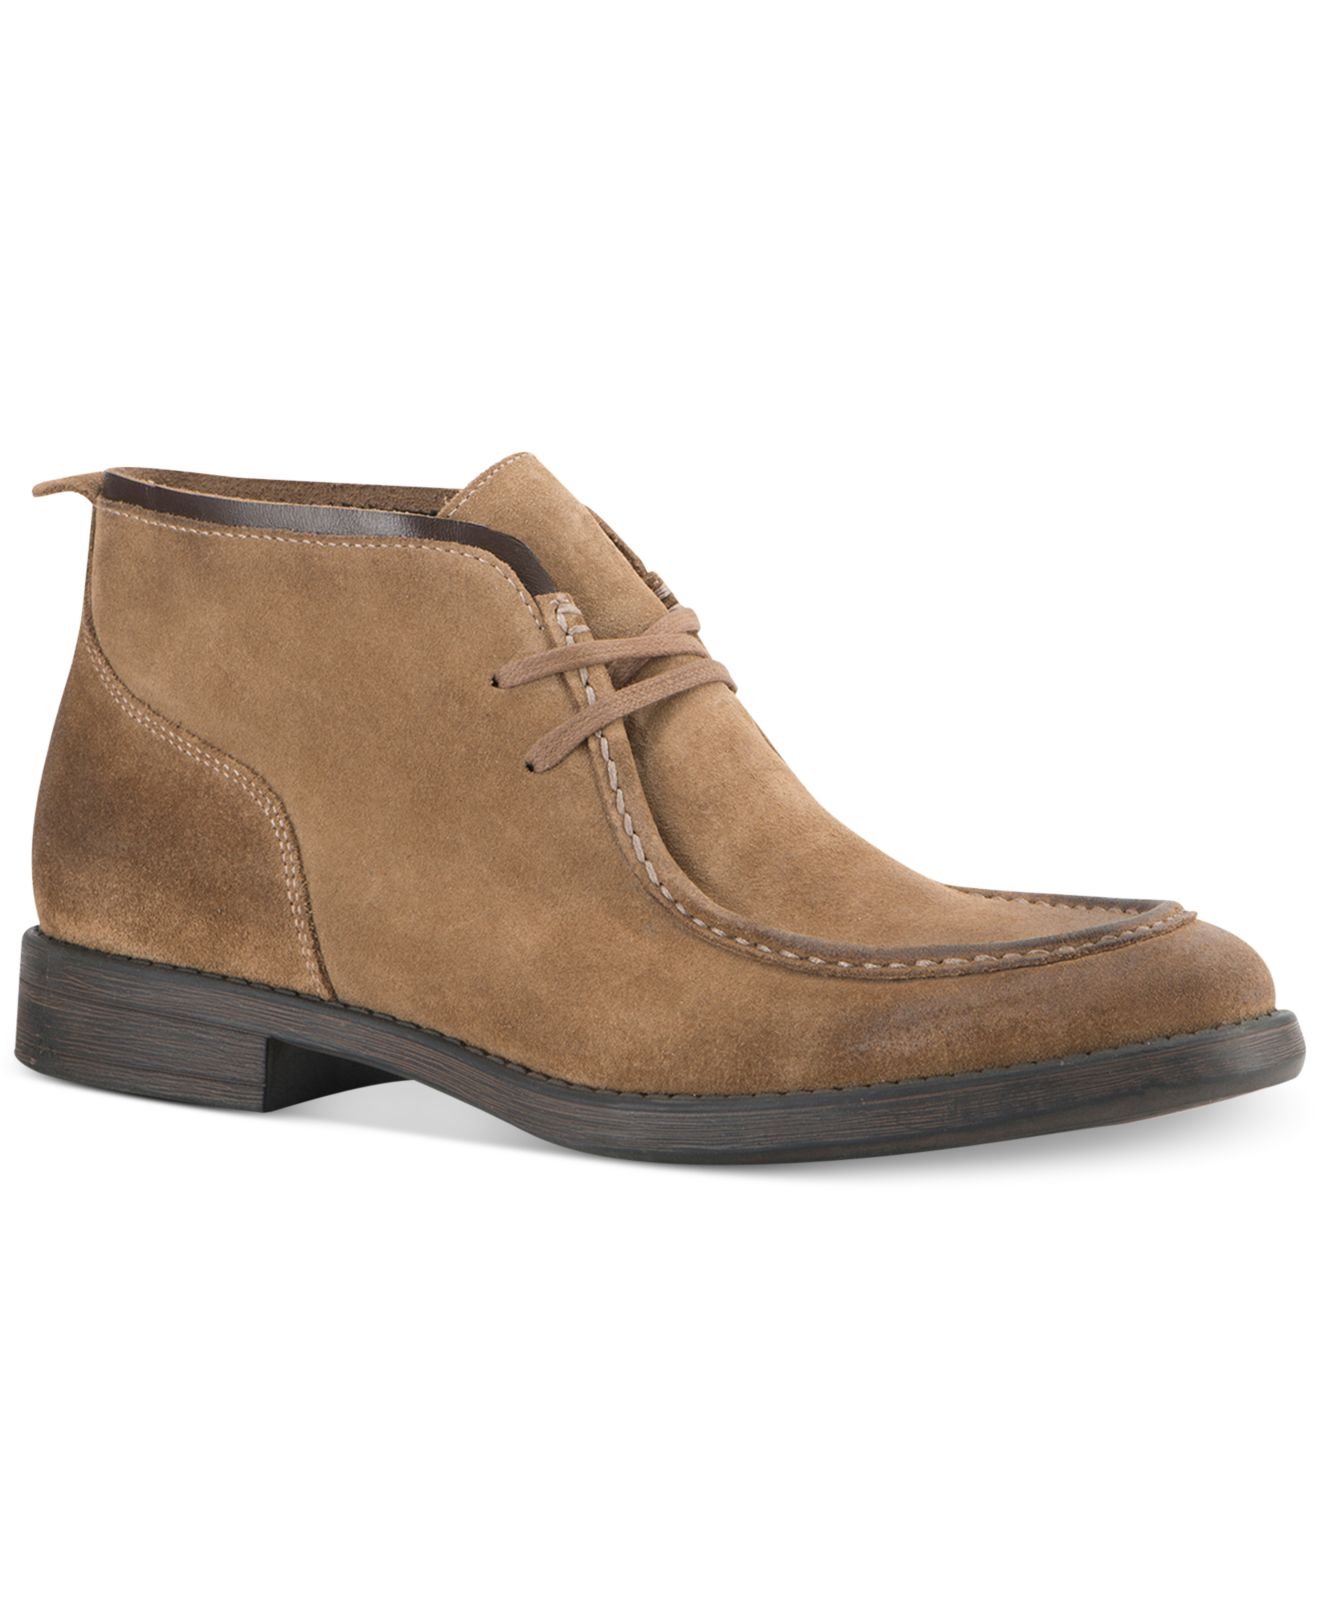 You should shop directly at UGG if you want the newest products. The good news is that you get free shipping and returns on all orders. UGG Australia official Sale Online Store offer UGG Boots licensed the rights to ugg official store uk sale the UGG BOOTS discount online, which is based on UGG's imagery.